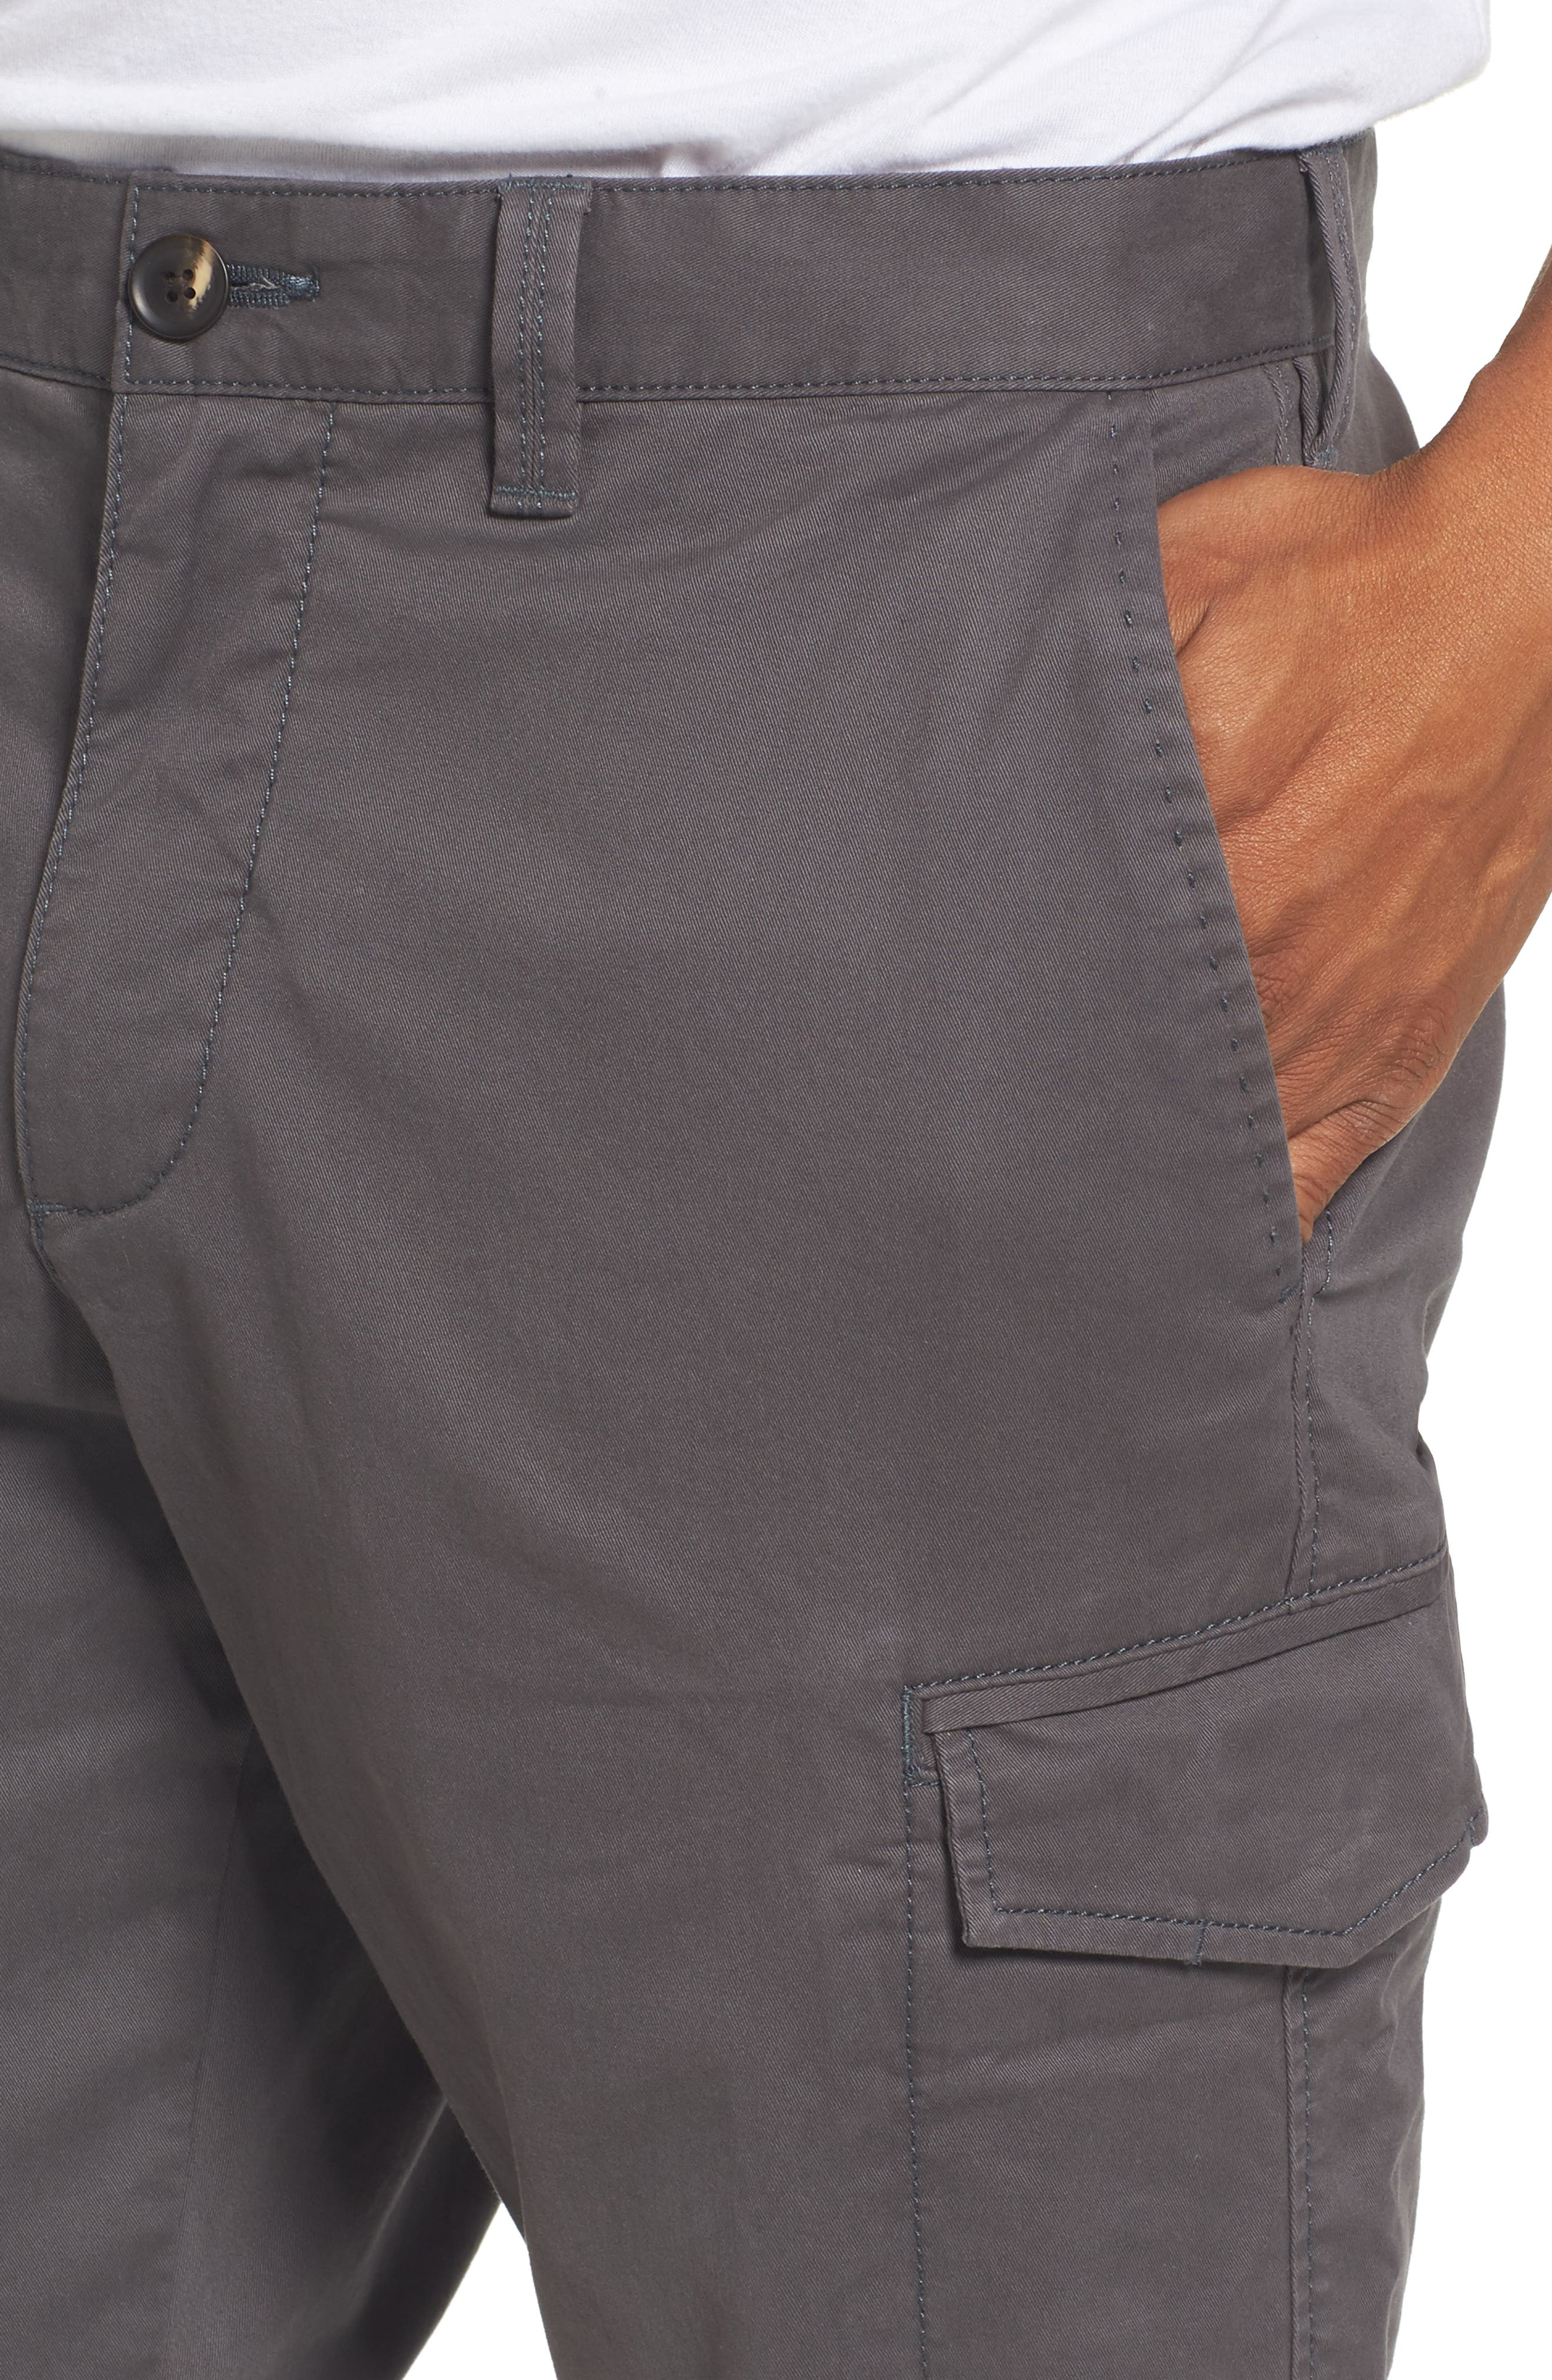 Regular Fit Cargo Pants,                             Alternate thumbnail 4, color,                             021